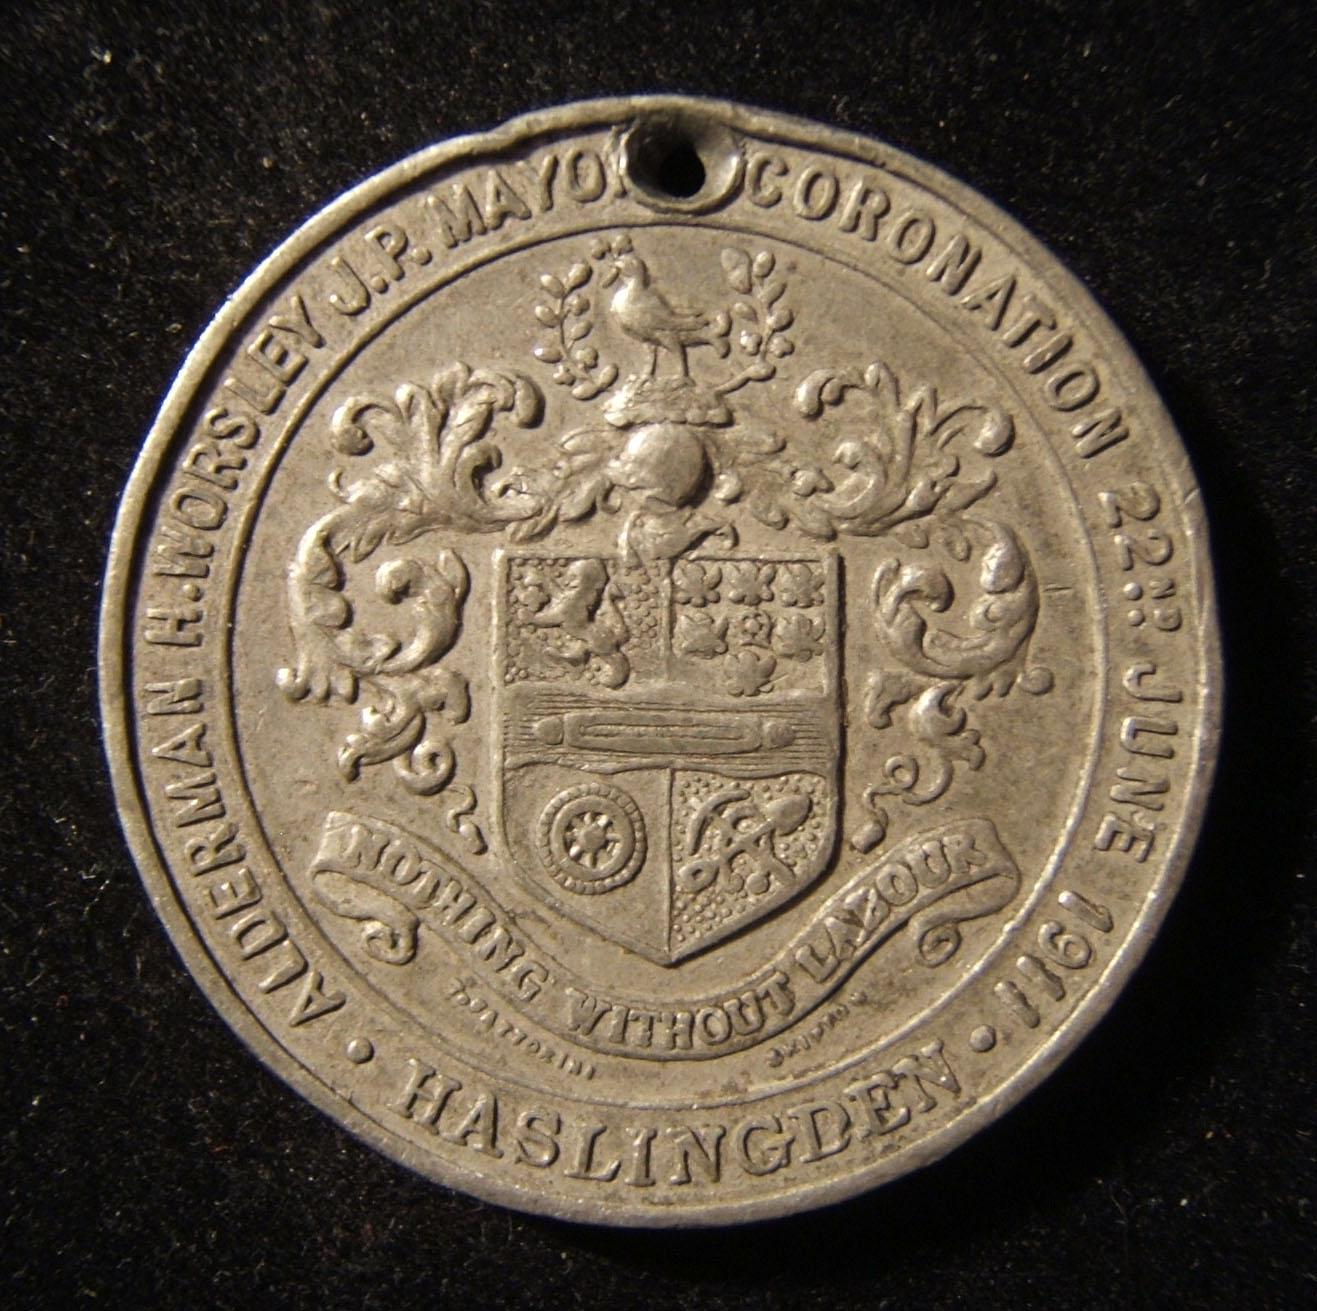 Great Britain / Haslingden city King George V coronation medallion, 1911; struck in aluminum; by T. Sattorini and Skipton; weight: 16.85g; size: 38.5mm. Obverse depicts the town ar